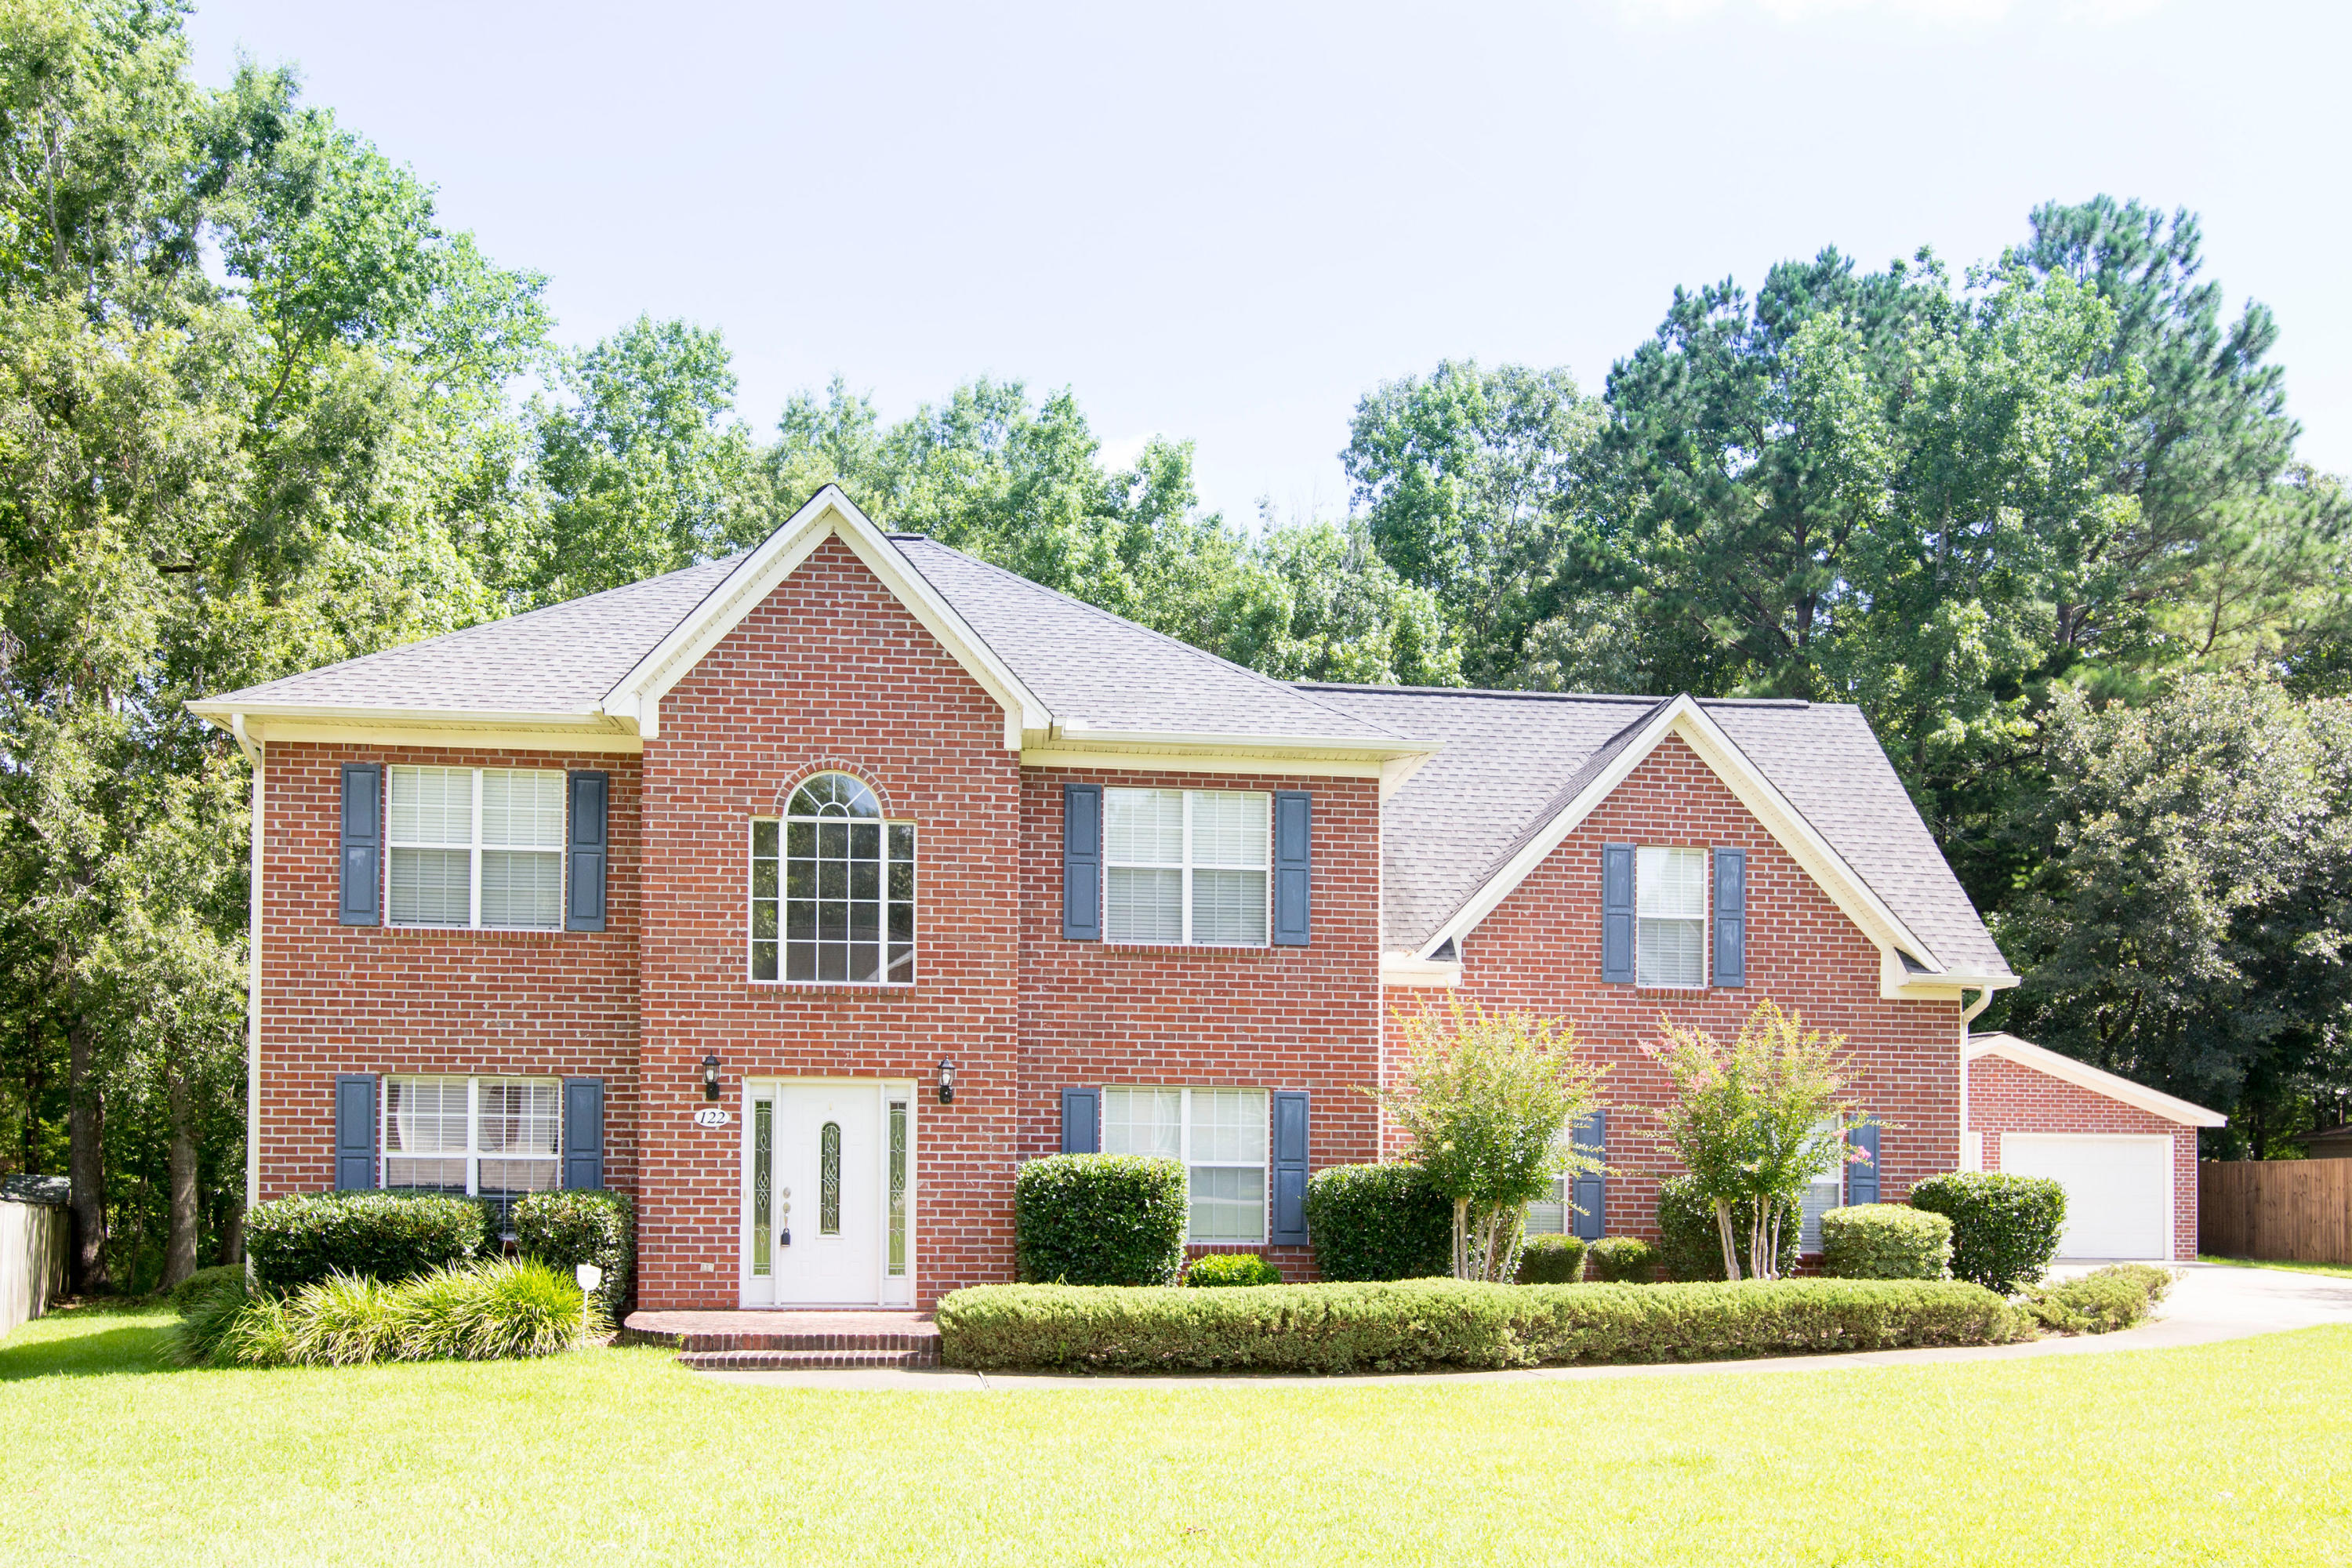 122 N Knightsbridge Court Goose Creek, SC 29445